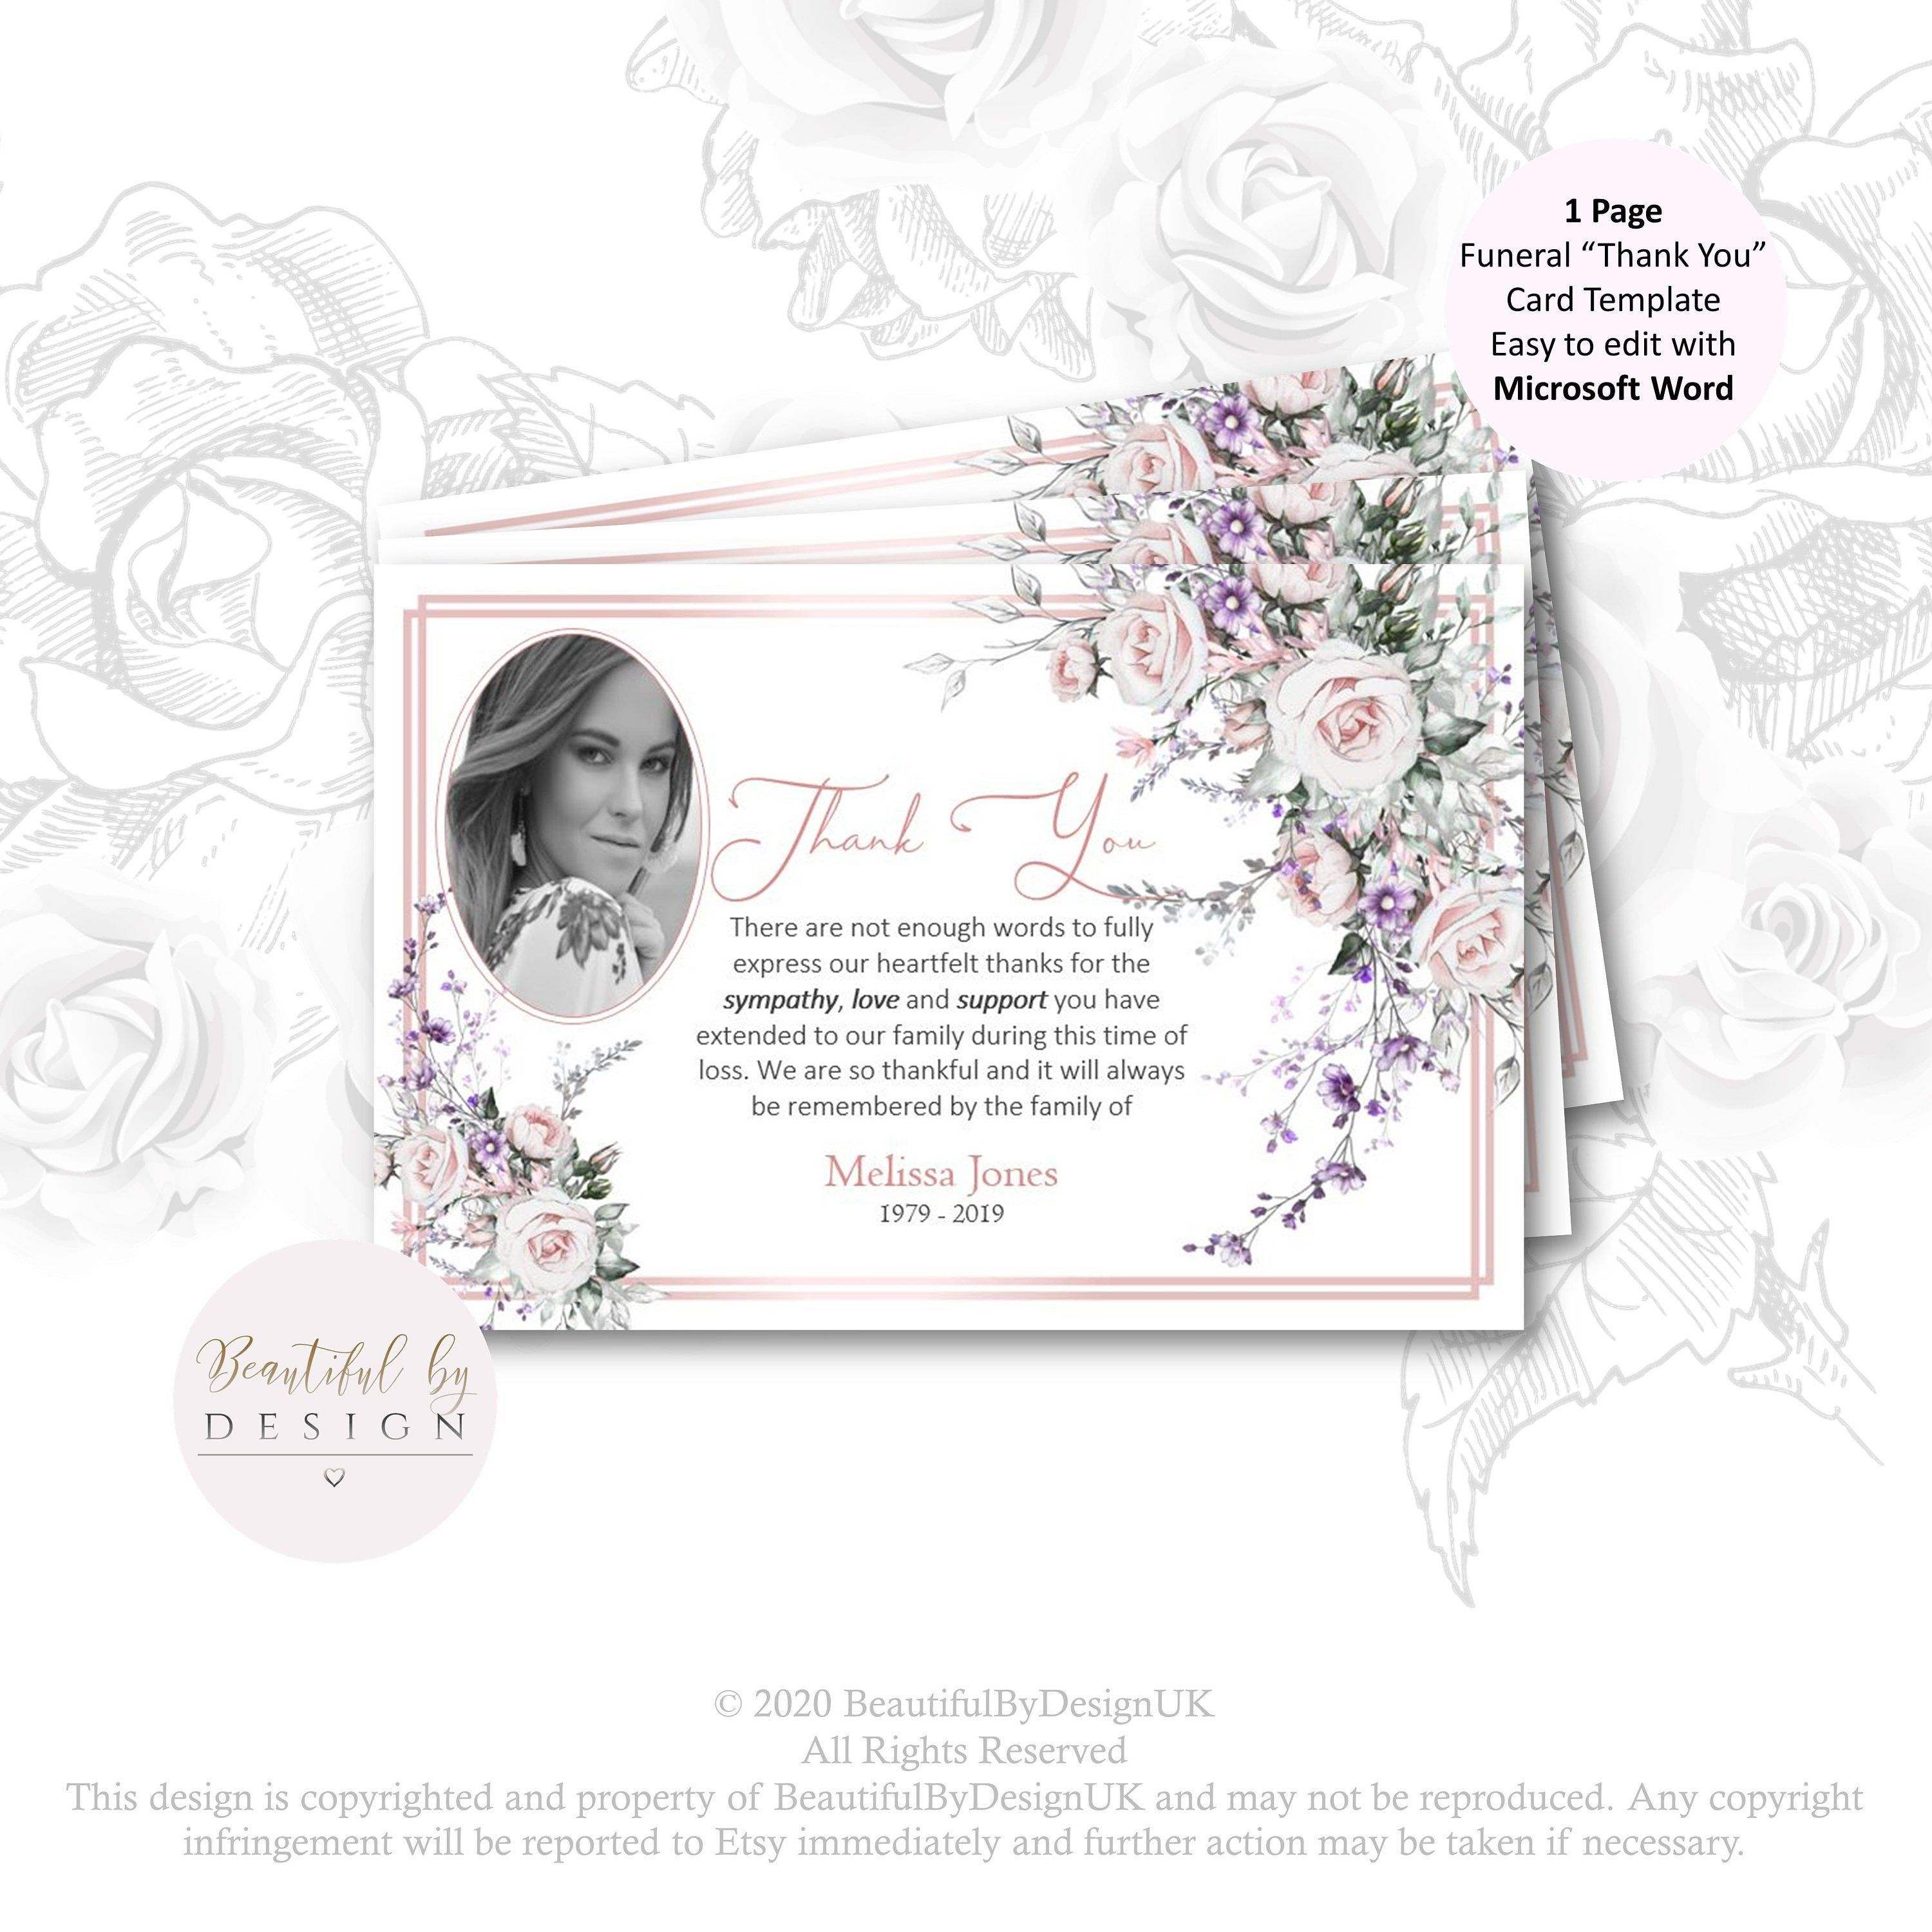 Watercolour Flowers Funeral Thank You Card With Photo In Loving